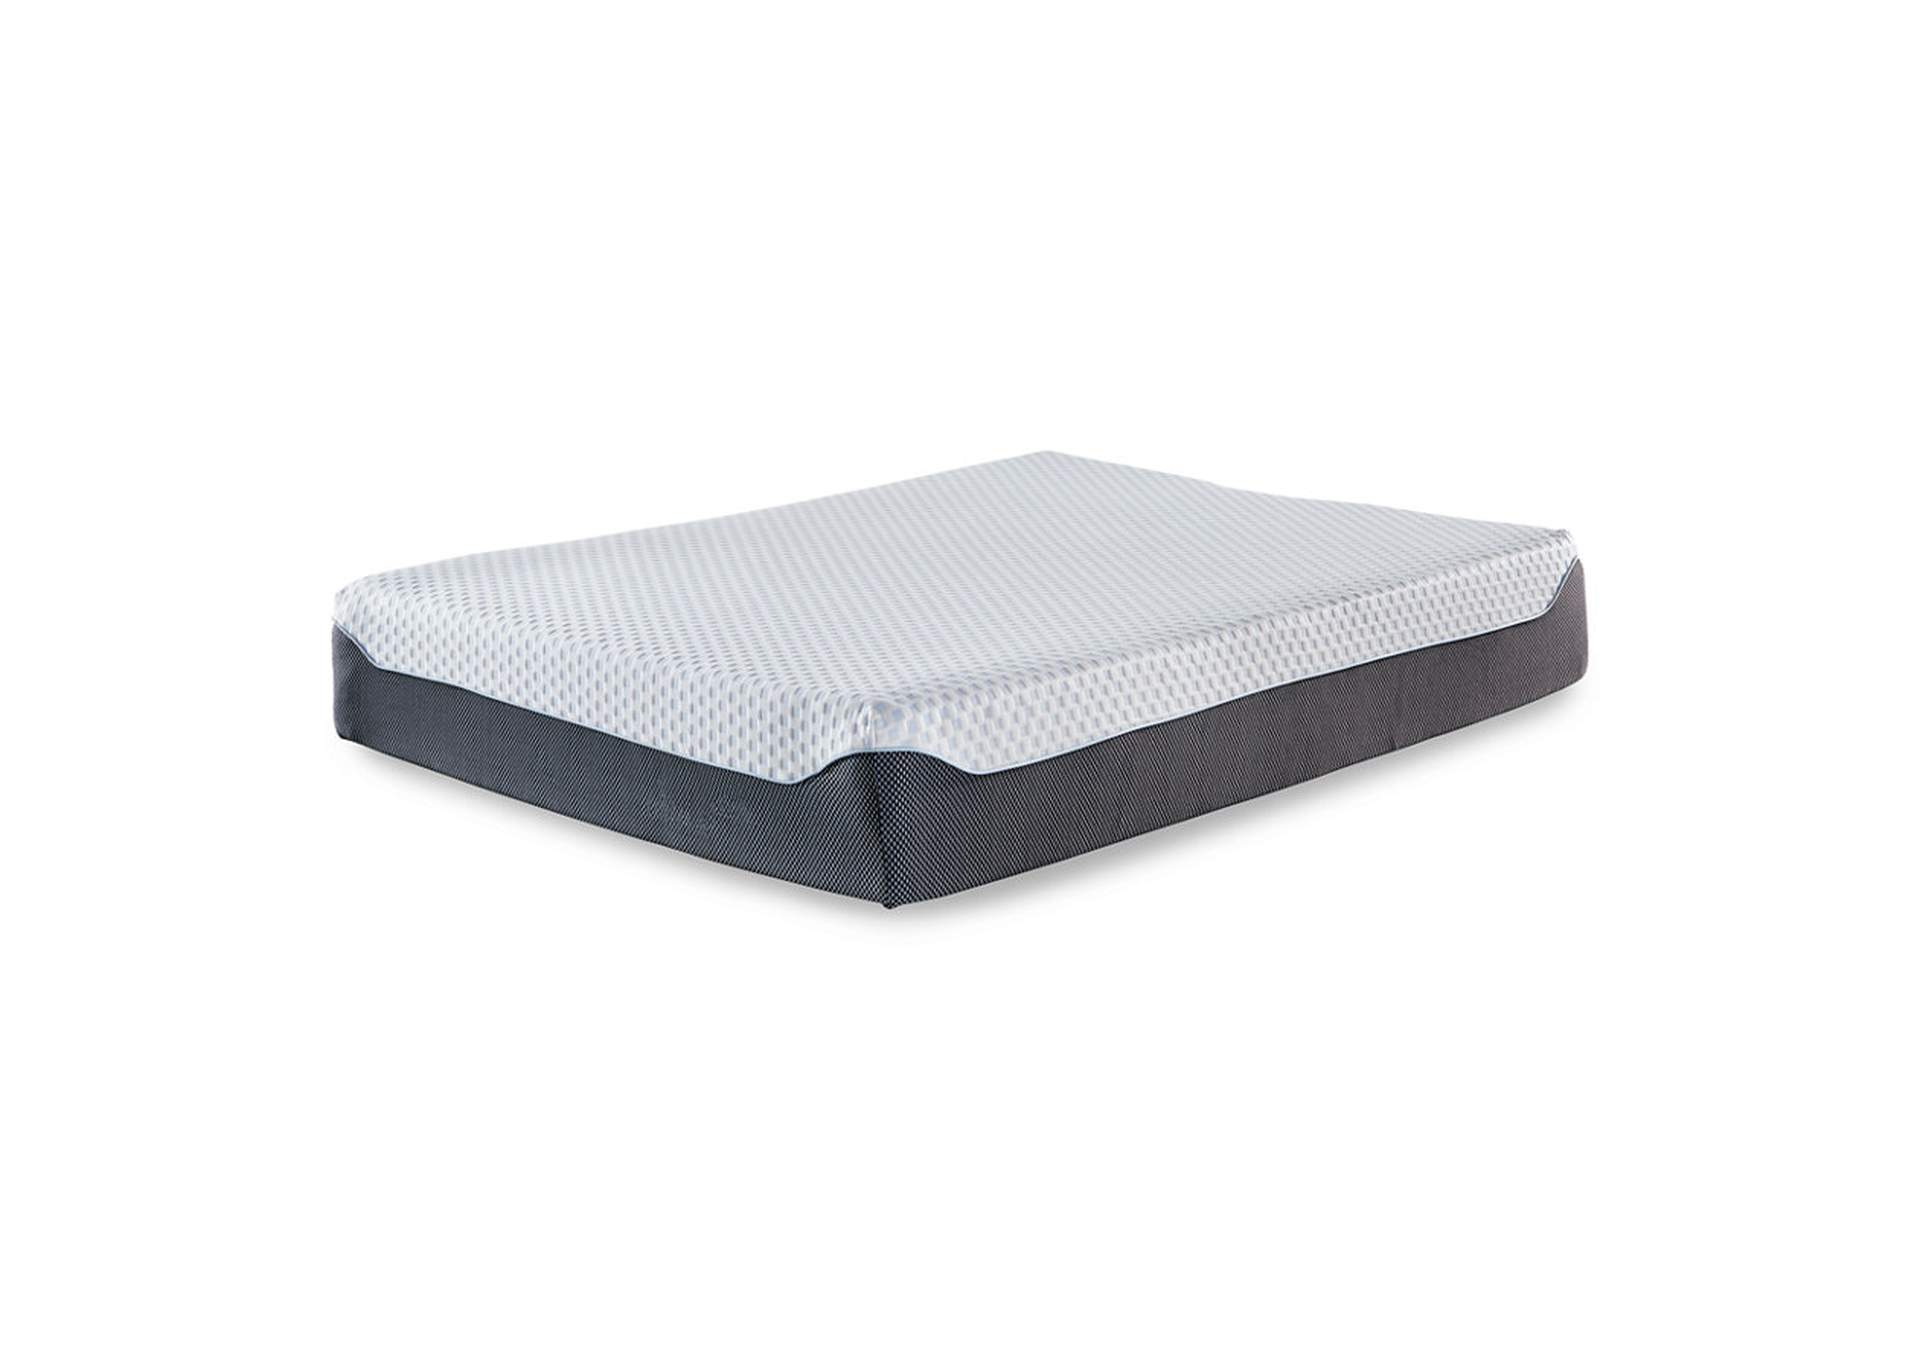 12 Inch Chime Elite King Memory Foam Mattress in a box,Sierra Sleep by Ashley